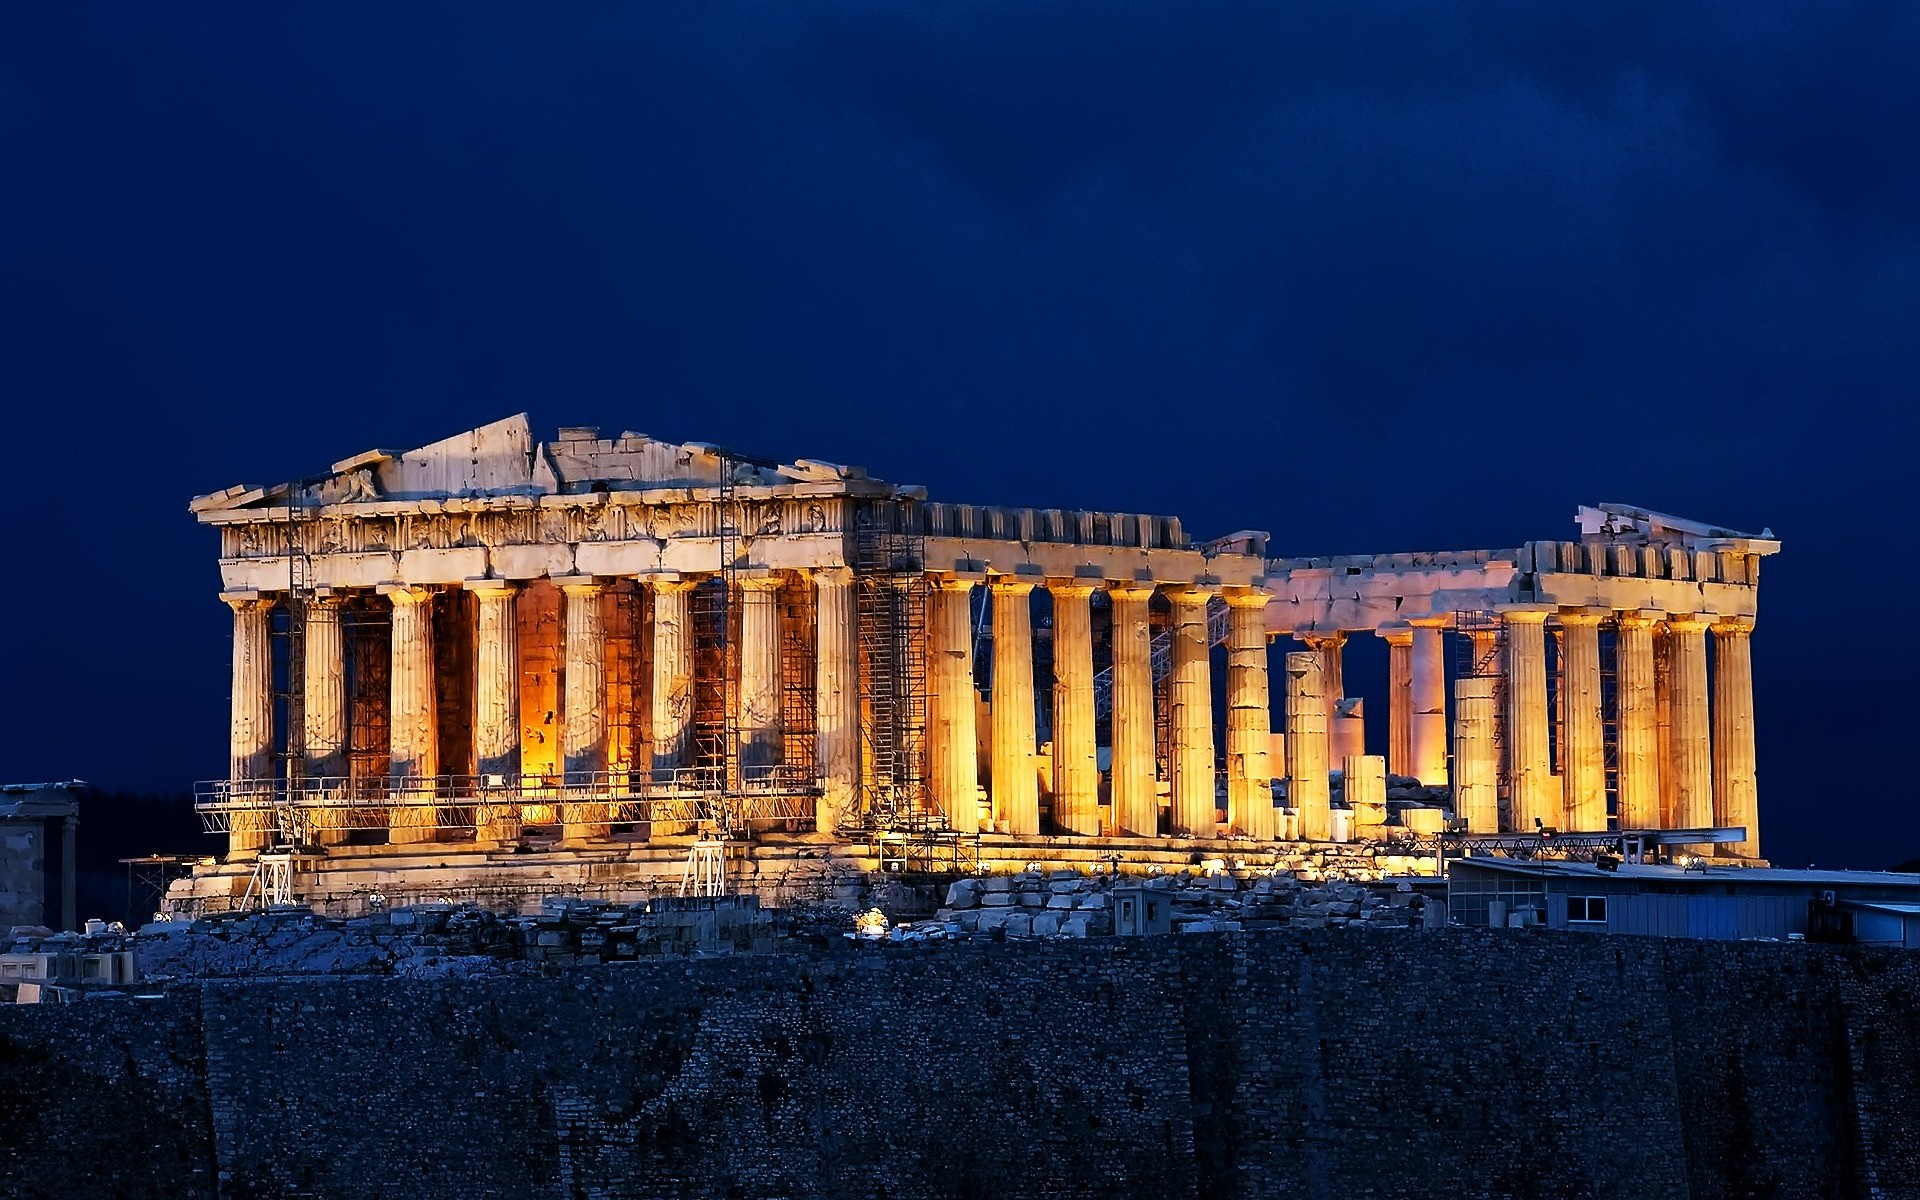 greece architecture column travel ancient sky temple building parthenon city outdoors daylight marble archaeology old monument tourism landmark acropolis art